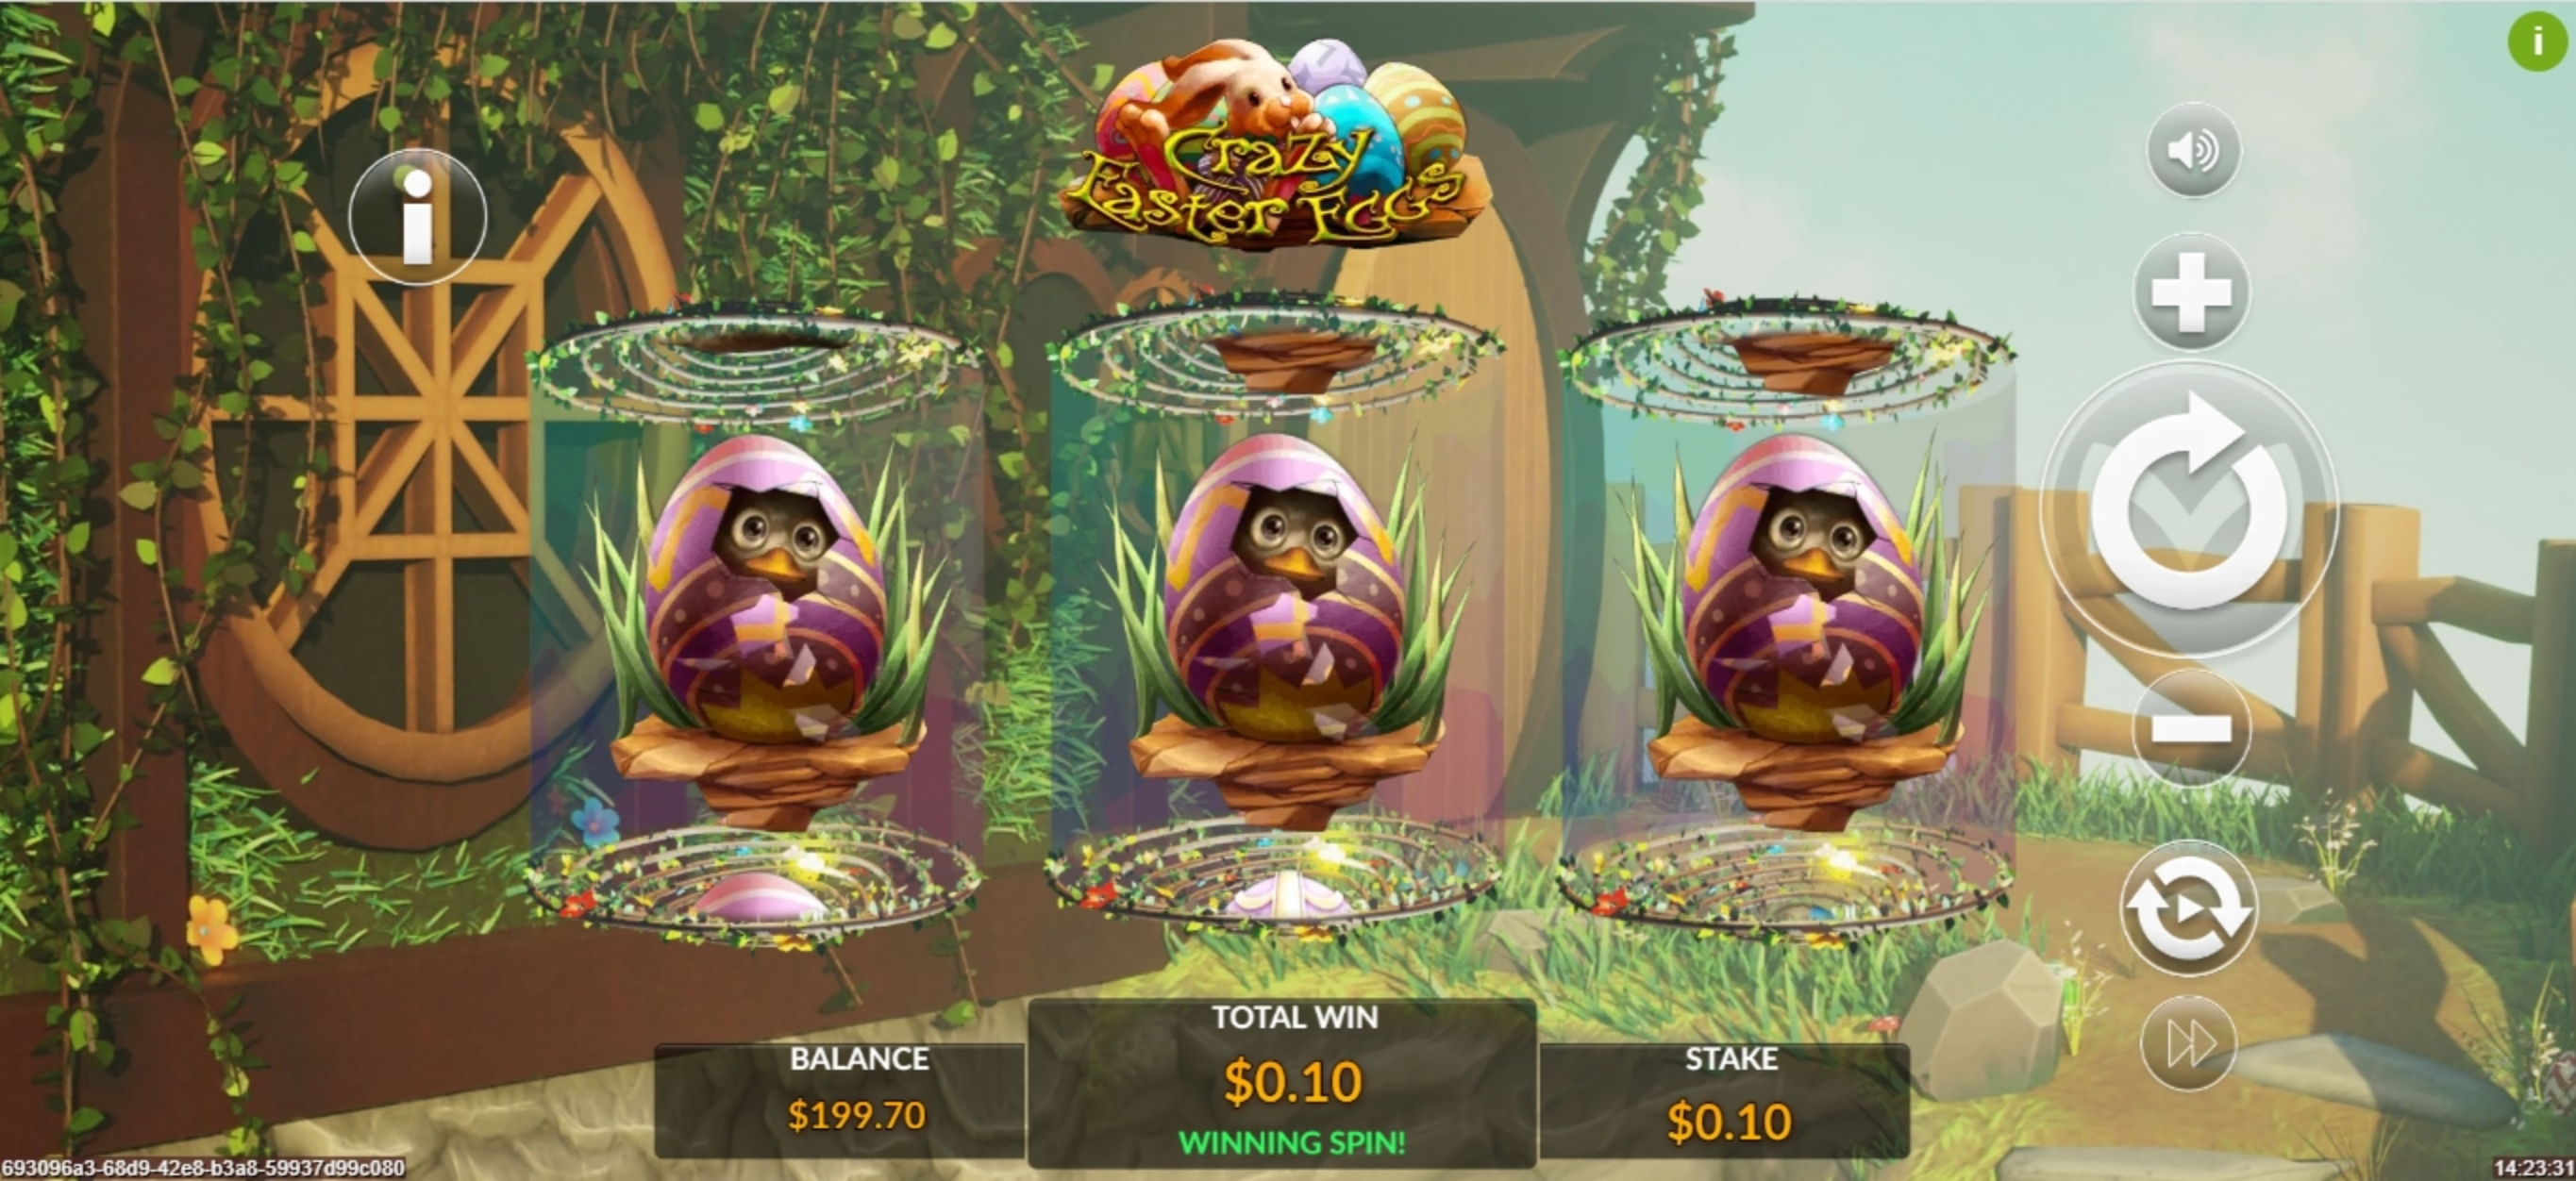 Win Money in Crazy Easter Eggs Free Slot Game by Maverick